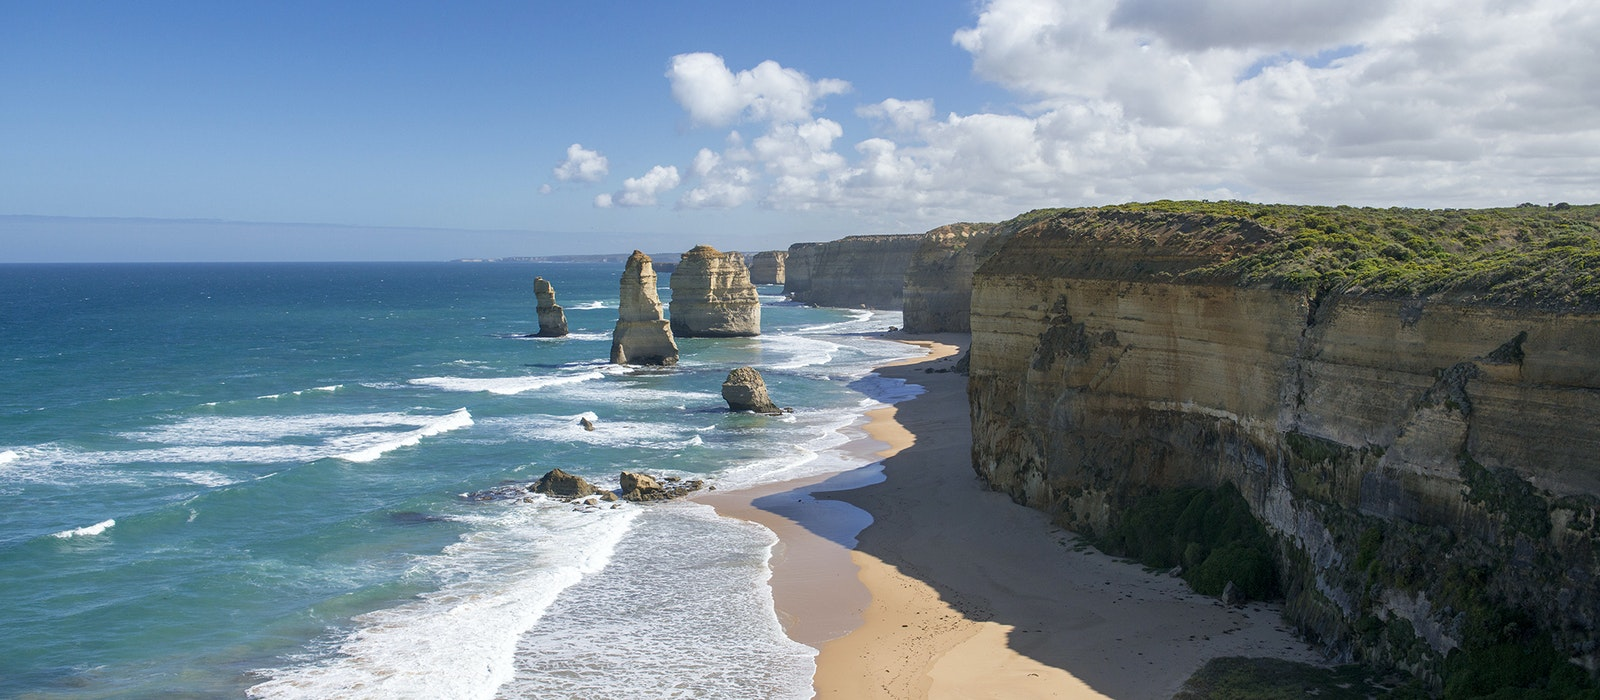 The Twelve Apostles is one of the many memorable sights you'll see on Australia's Great Ocean Road.